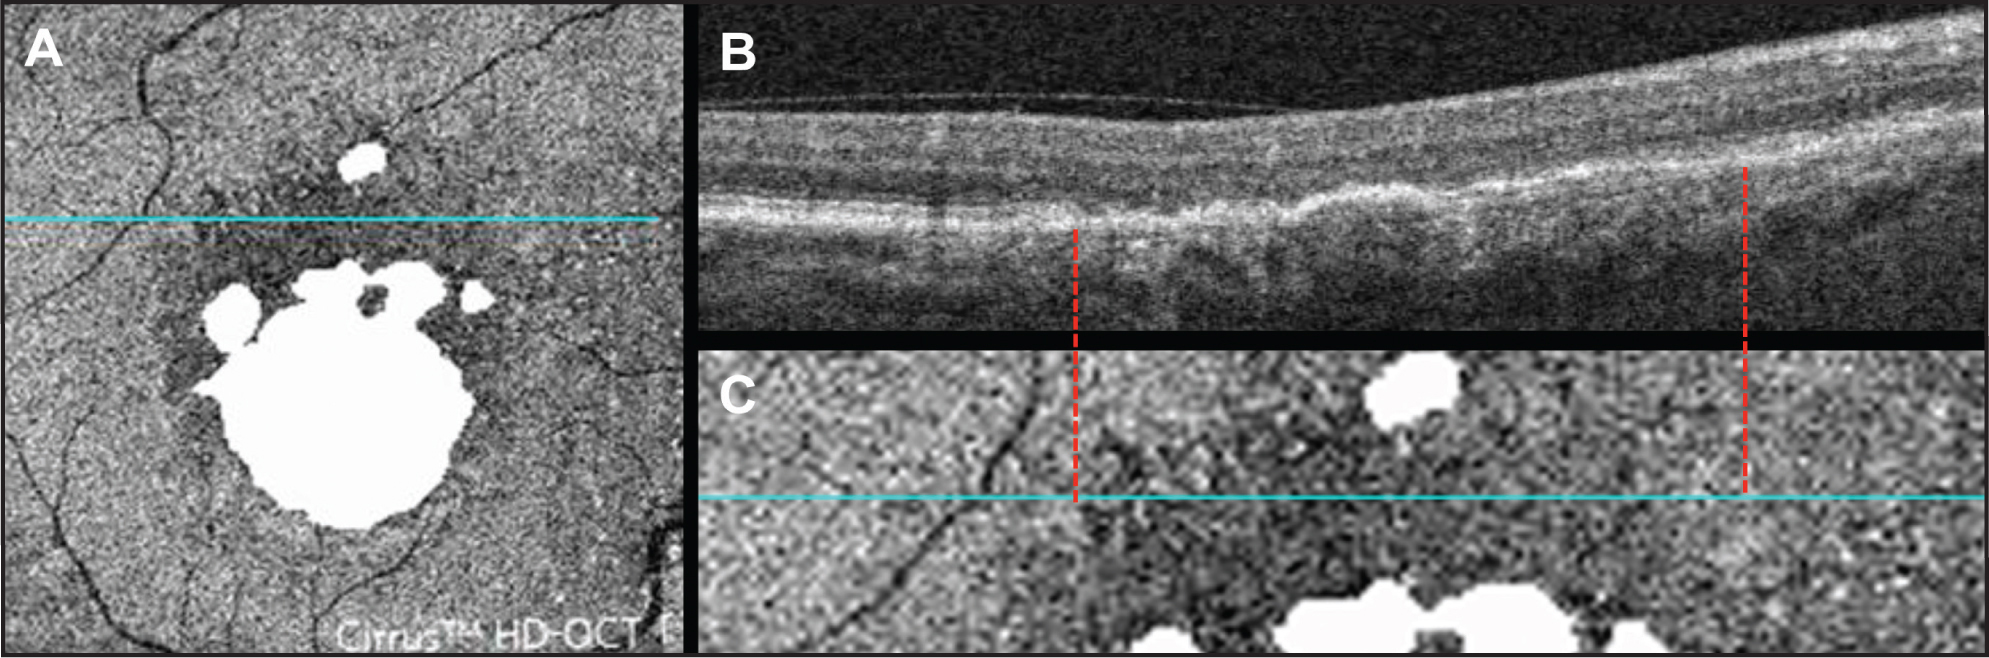 Correlation between individual B-scan and pattern observed on outer retinal en face image. (A) Baseline en face image with superimposed baseline GA (same as Figure 2G) and blue line depicting location of B-scan shown in B. (B) B-scan through dark area above GA corresponding to blue line on en face images in A and C. (C) Magnified portion of en face image with blue line depicting location of B-scan shown in B. Red dashed lines show correlation between dark area on en face image and IS/OS disruption on B-scan.